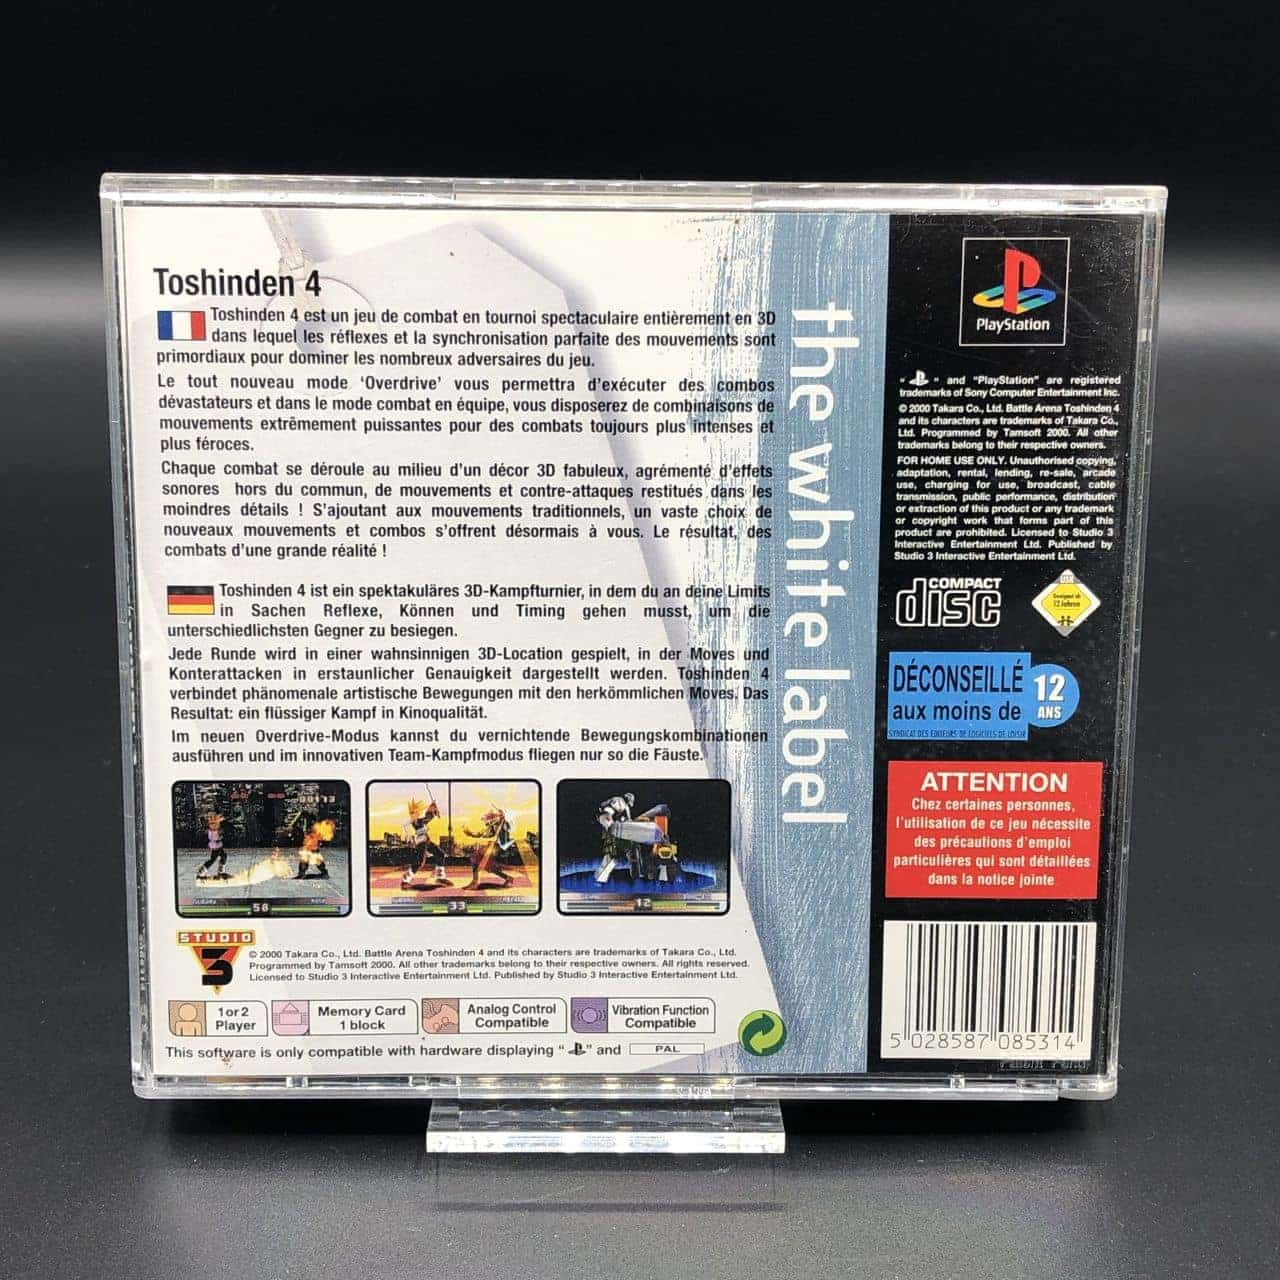 PS1 Toshinden 4 (The White Label) (Komplett) (Sehr gut) Sony PlayStation 1